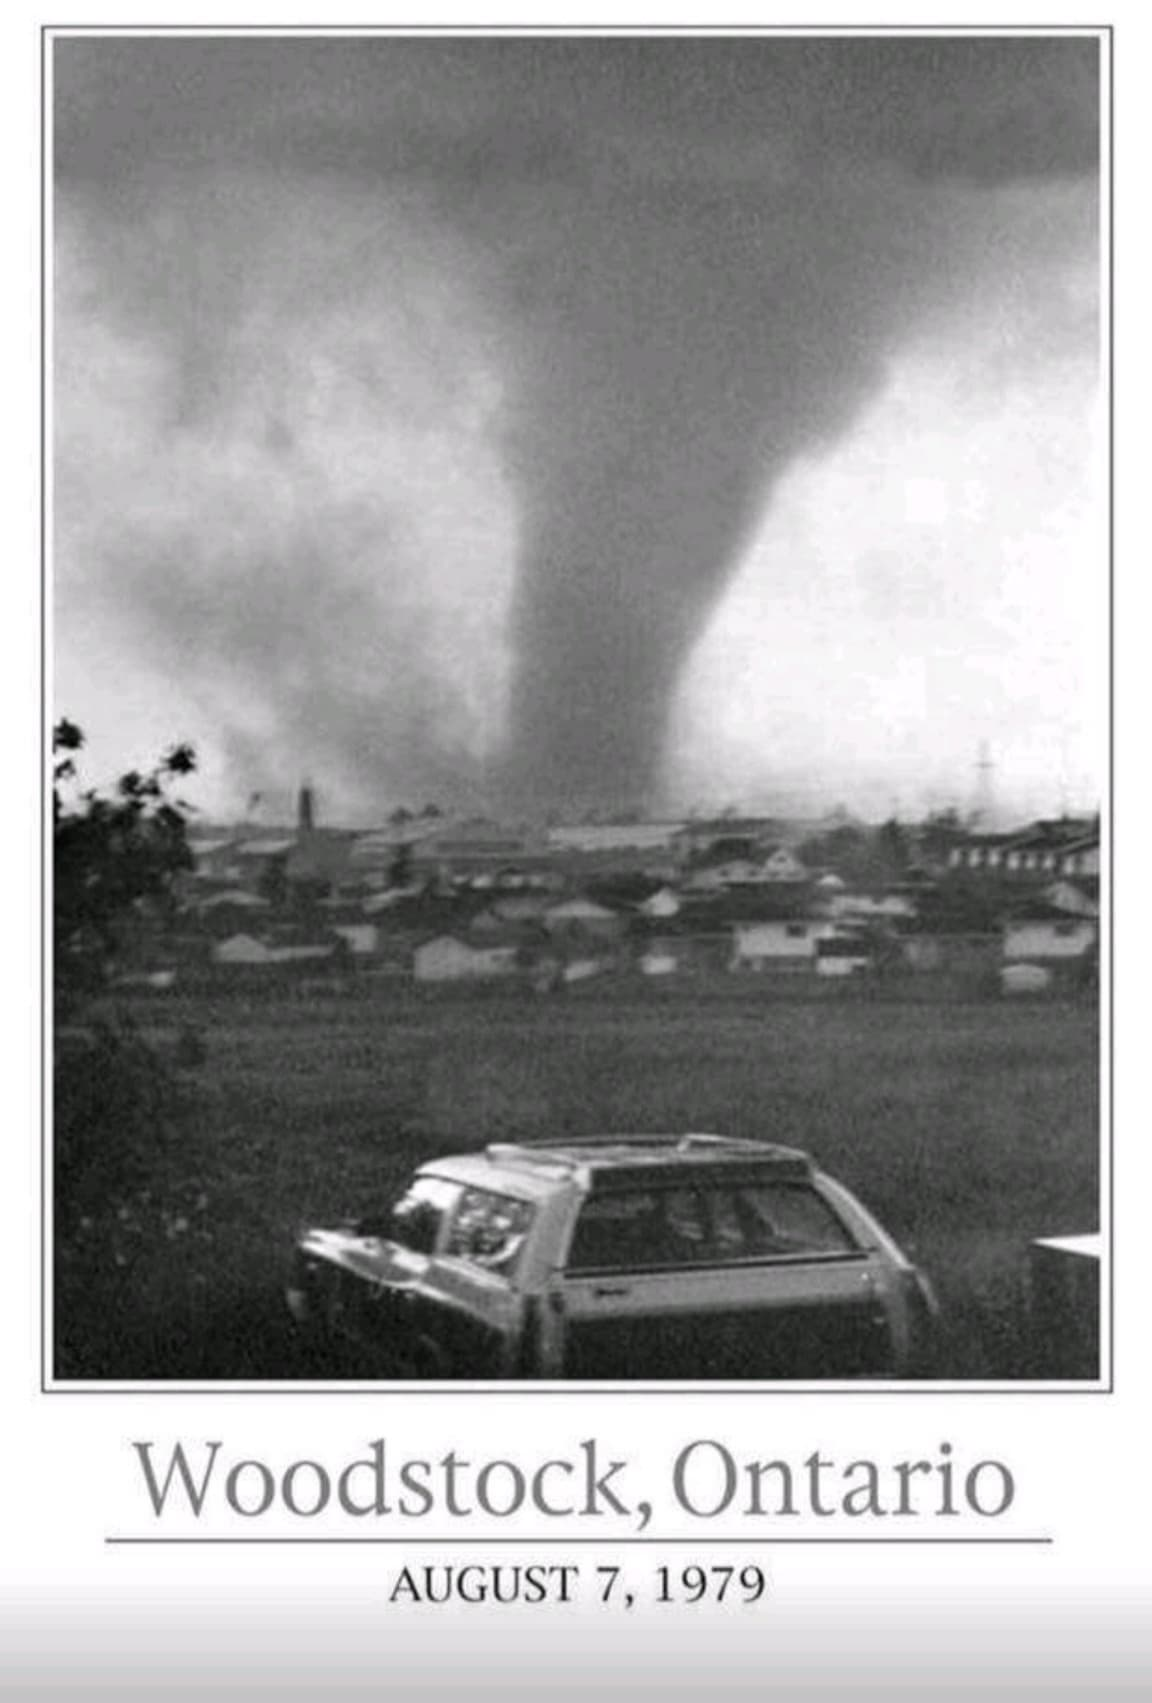 Remembering the Woodstock, Ontario F4 Tornadoes - August 7th